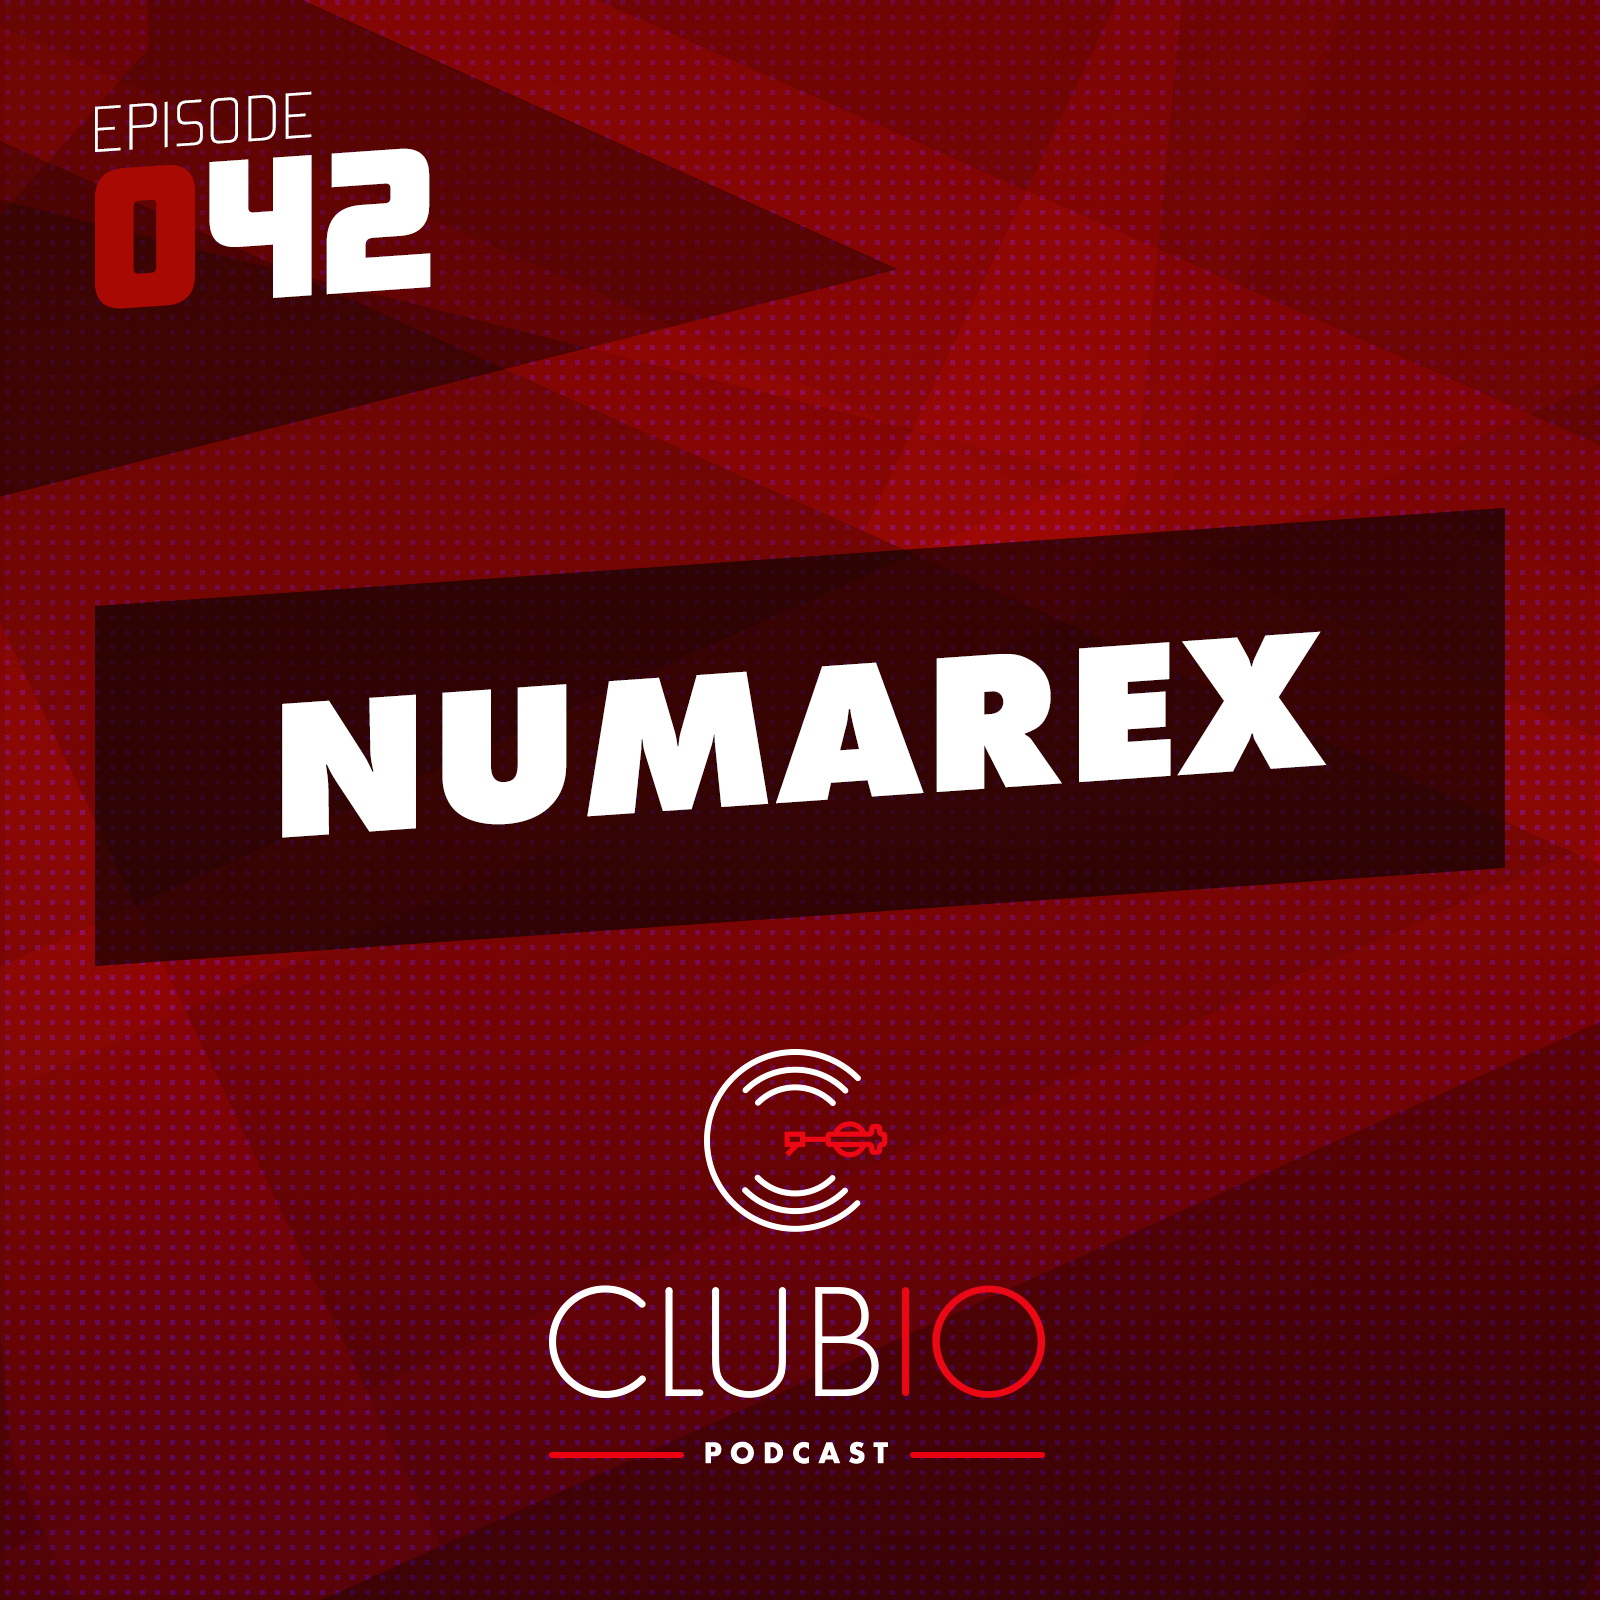 Clubio Podcast 042 - Numarex